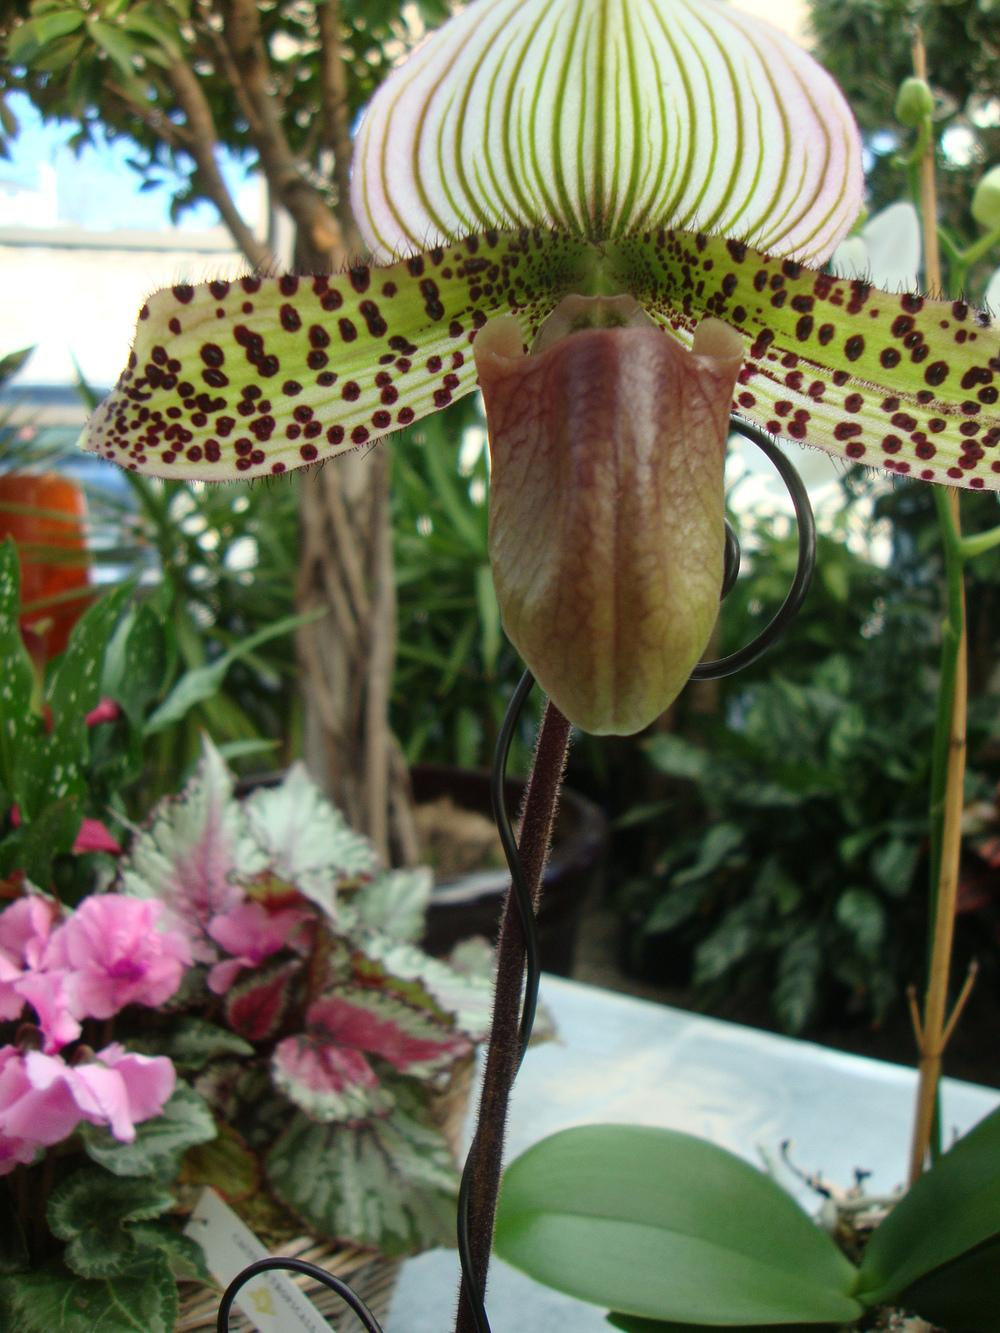 Photo of Slipper Orchid (Paphiopedilum) uploaded by Paul2032